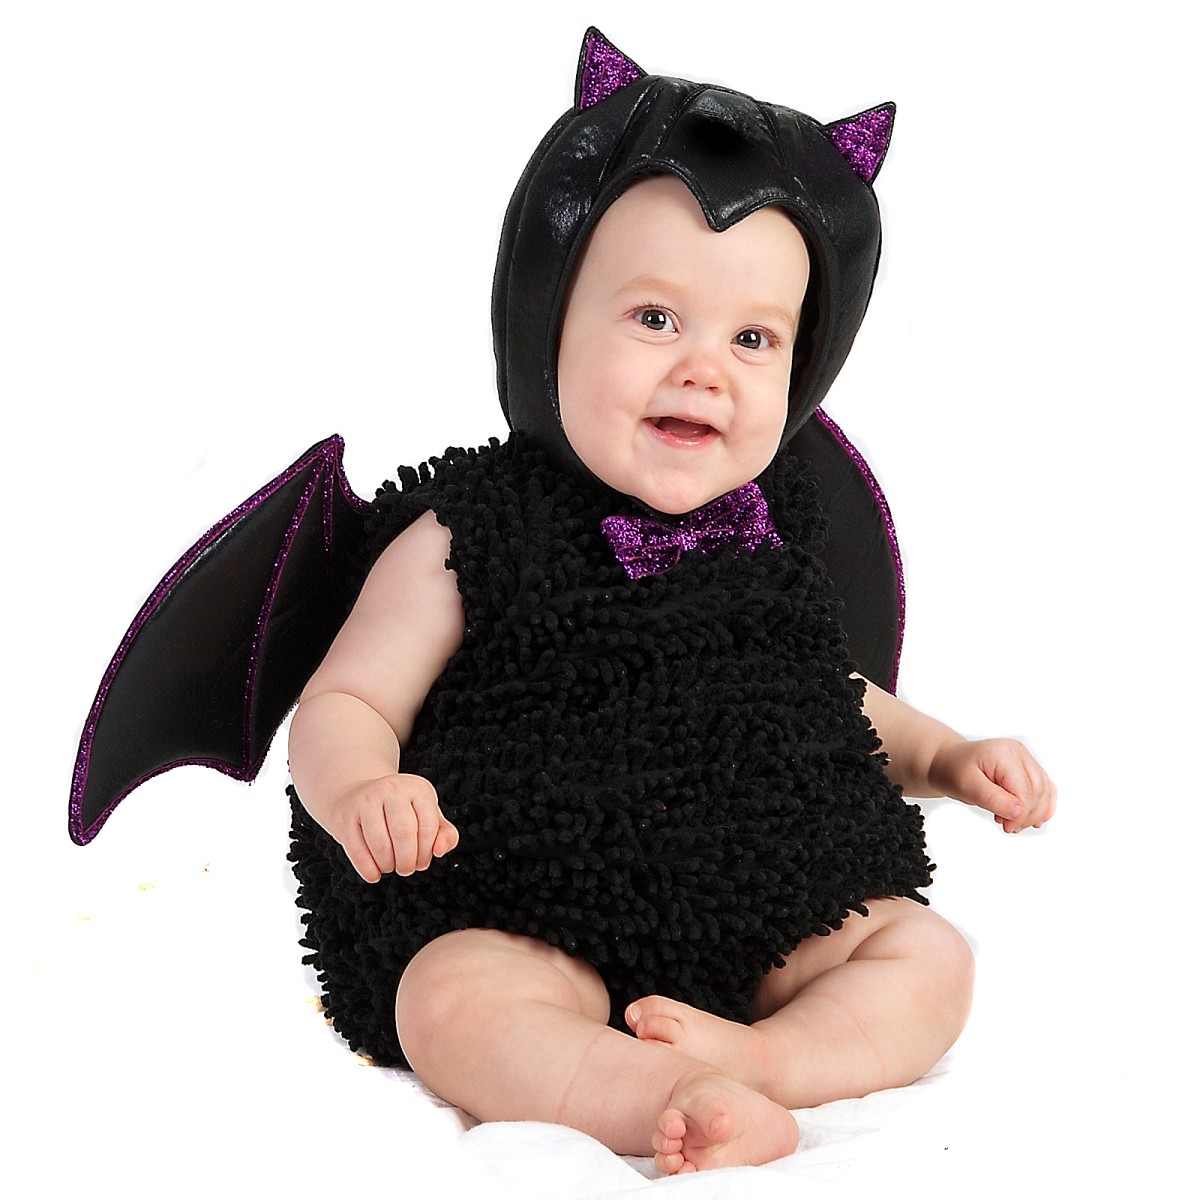 The Bat Halloween Costume Baby Toddler Infant